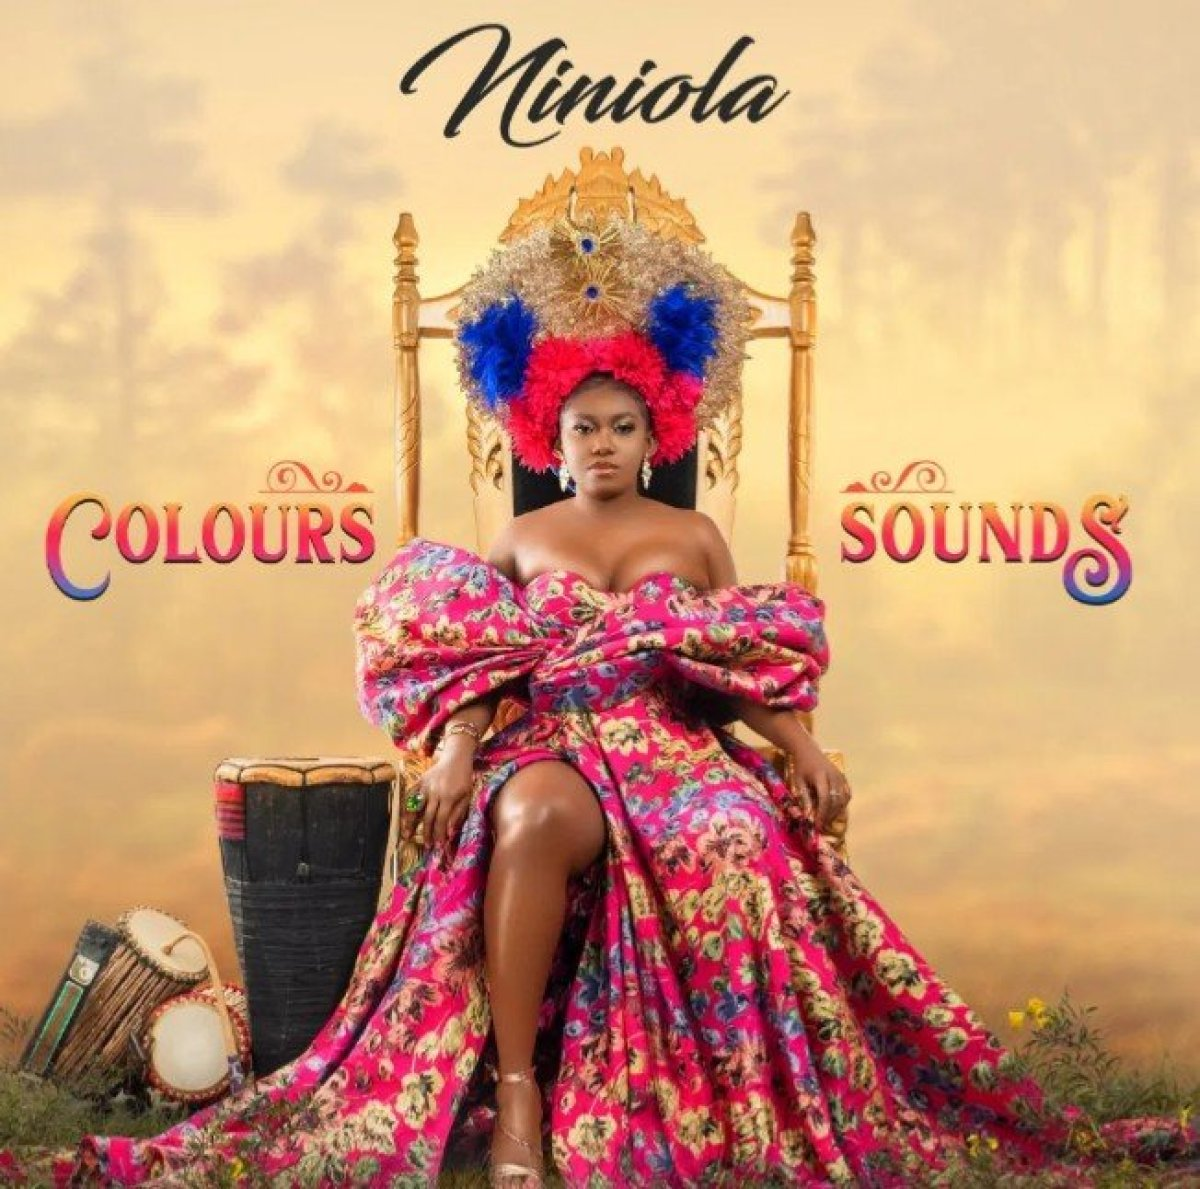 Niniola – Fire Ft. Timbaland MP3 DOWNLOAD FREE